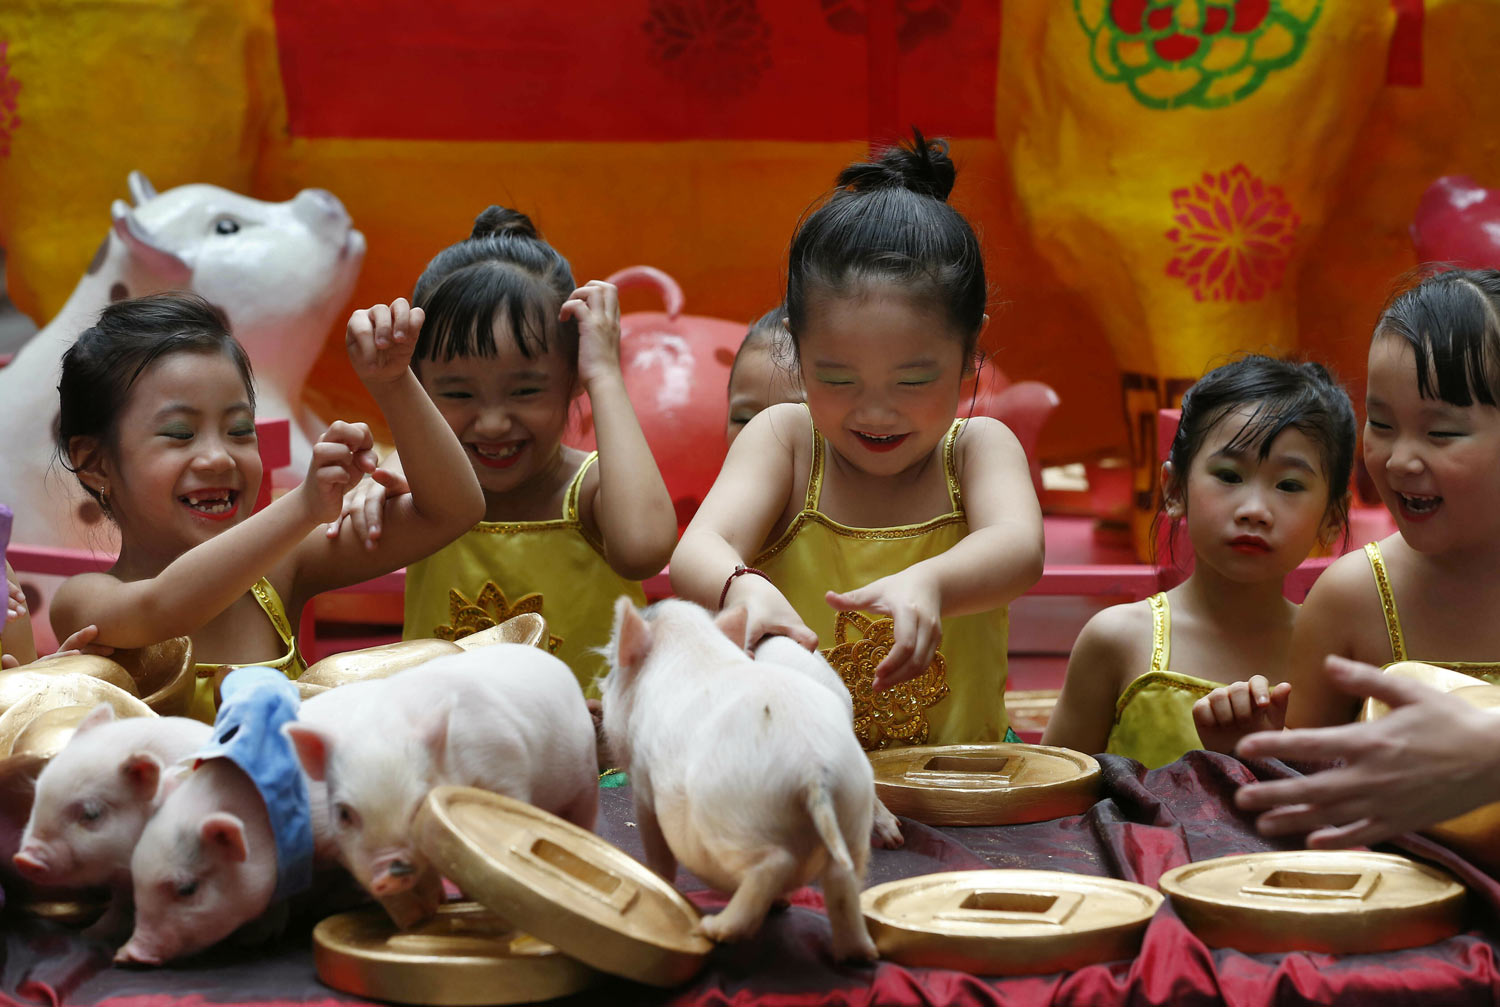 Girls play with live Teacup pigs, a rare pet in the country, at the start of celebrations leading to the Lunar New Year, Friday, Feb. 1, 2019 at Lucky Chinatown Plaza mall in Manila, Philippines. The upcoming Year of the Pig represents abundance, diligence and generosity. (AP Photo/Bullit Marquez)